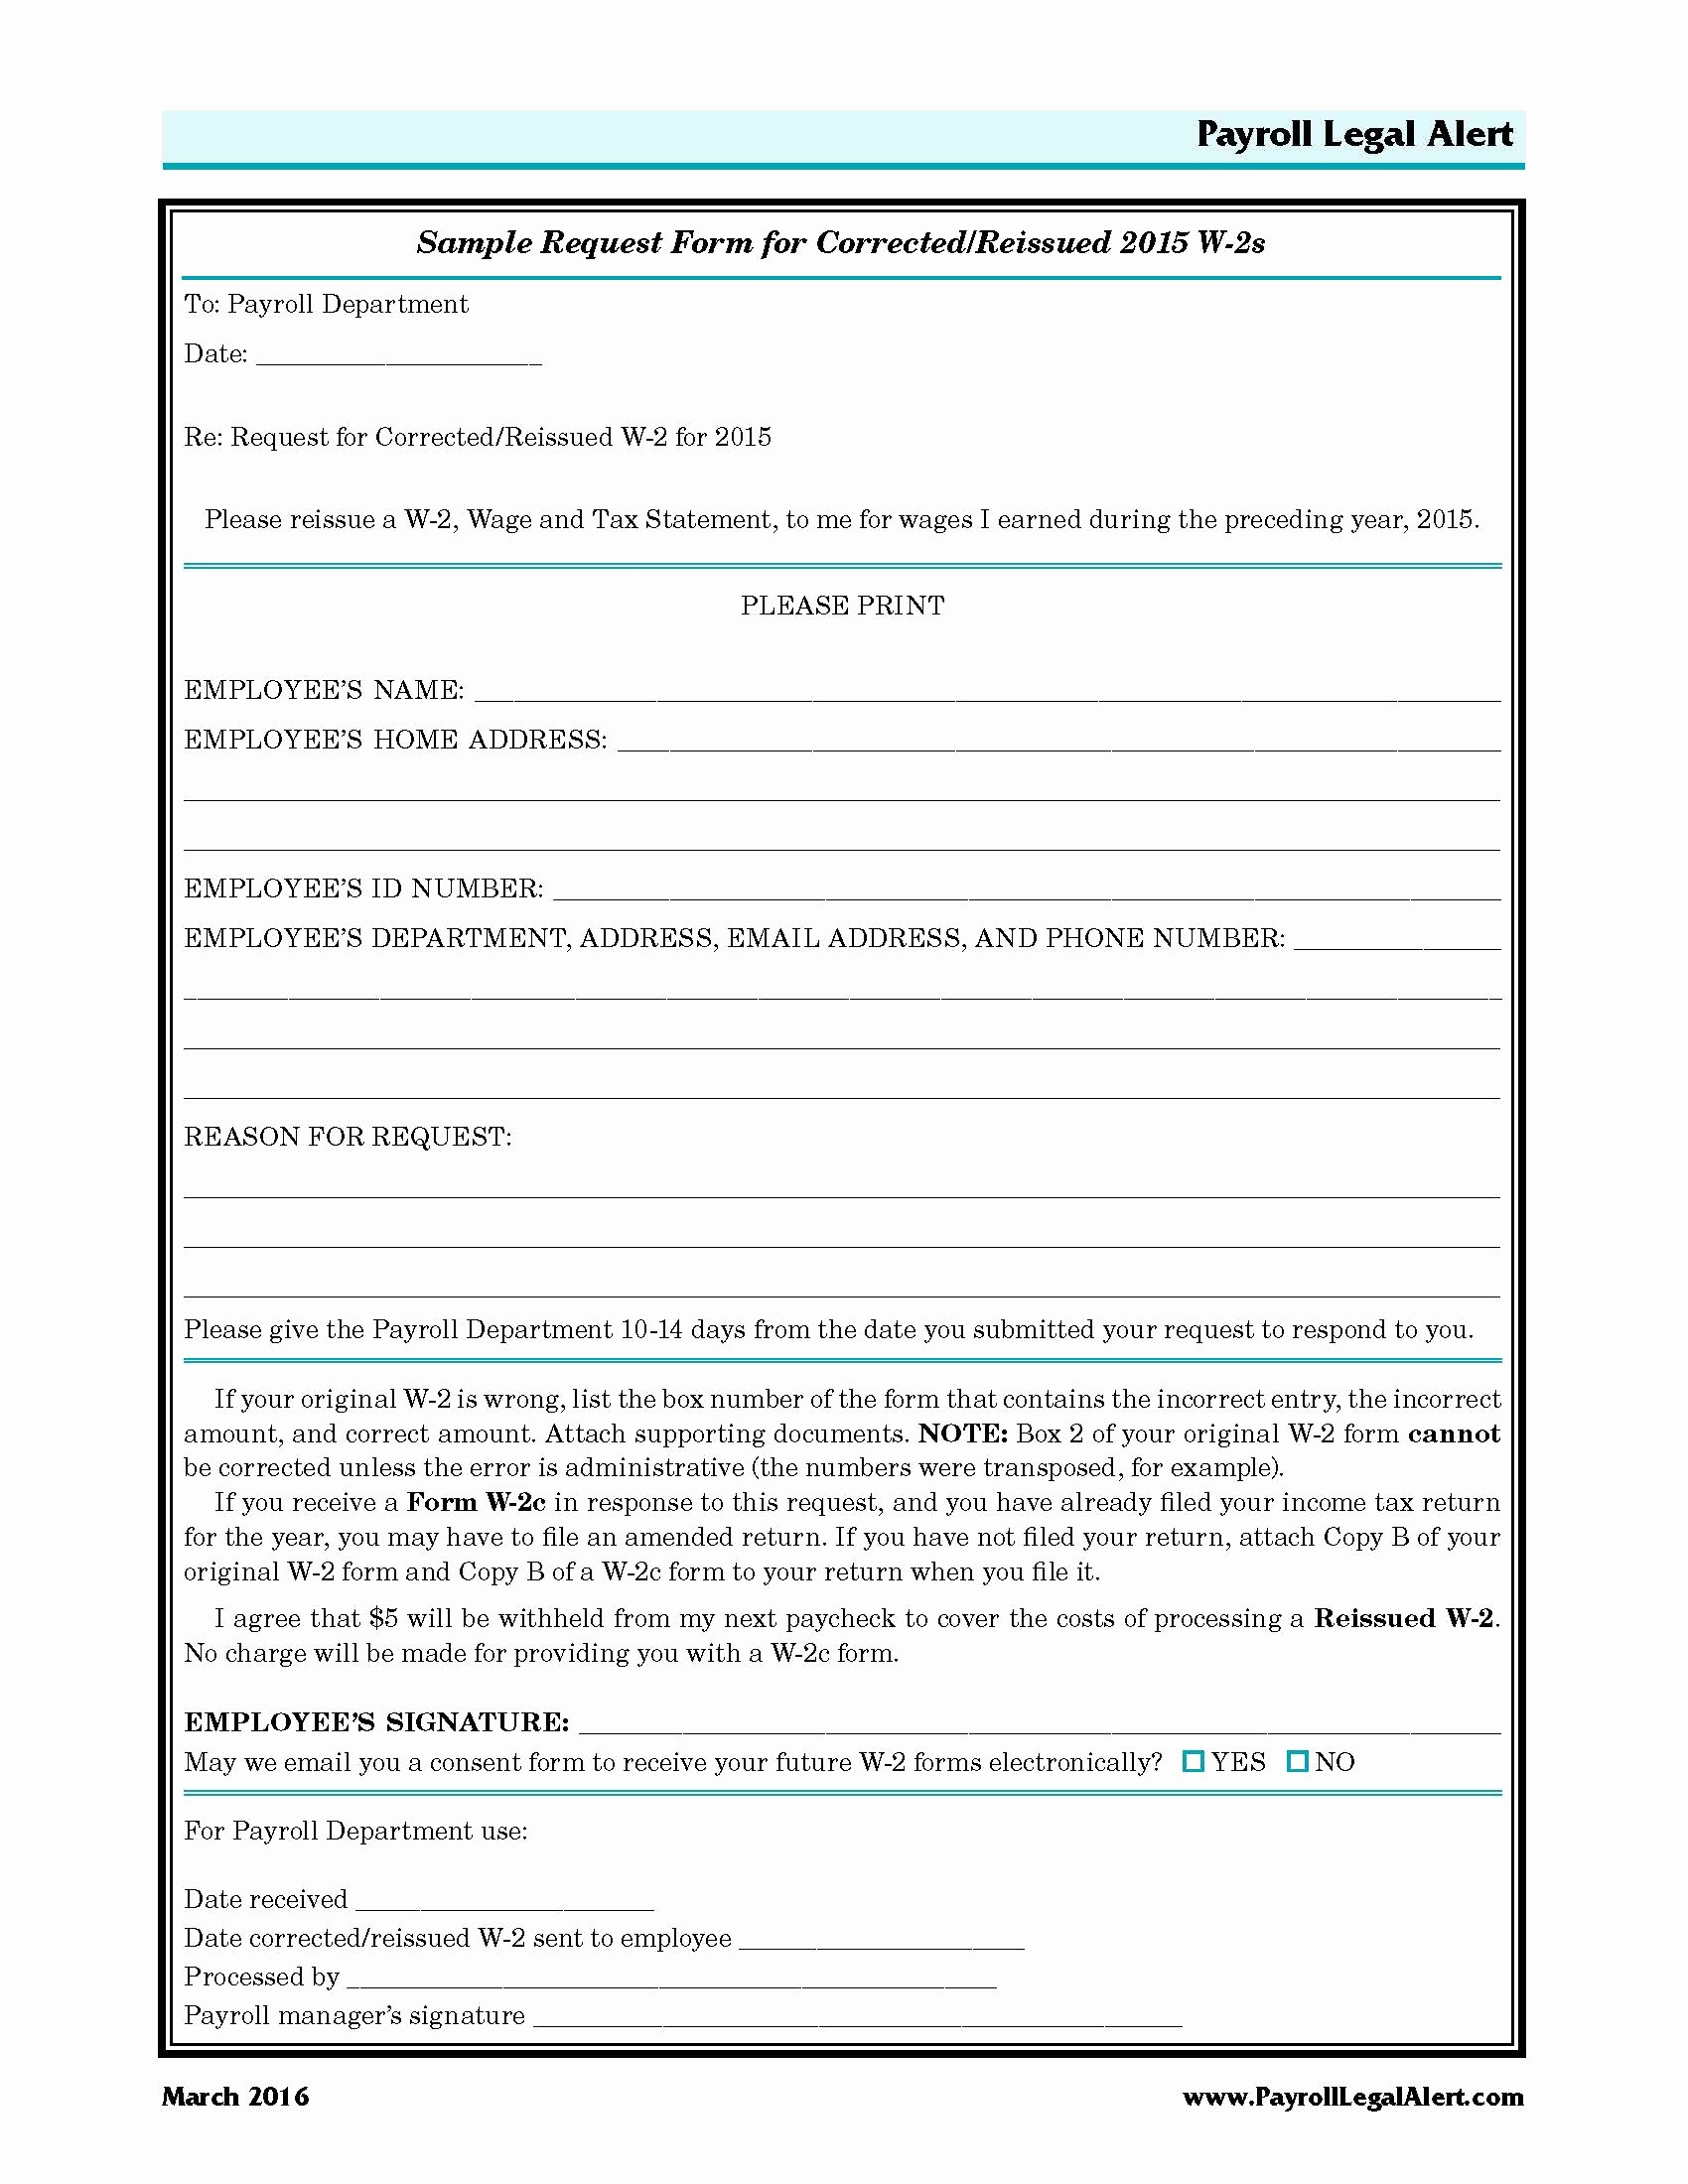 Overtime Sign Up Sheet Template Best Of A Sample Request form for Corrected Reissued 2015 W 2s